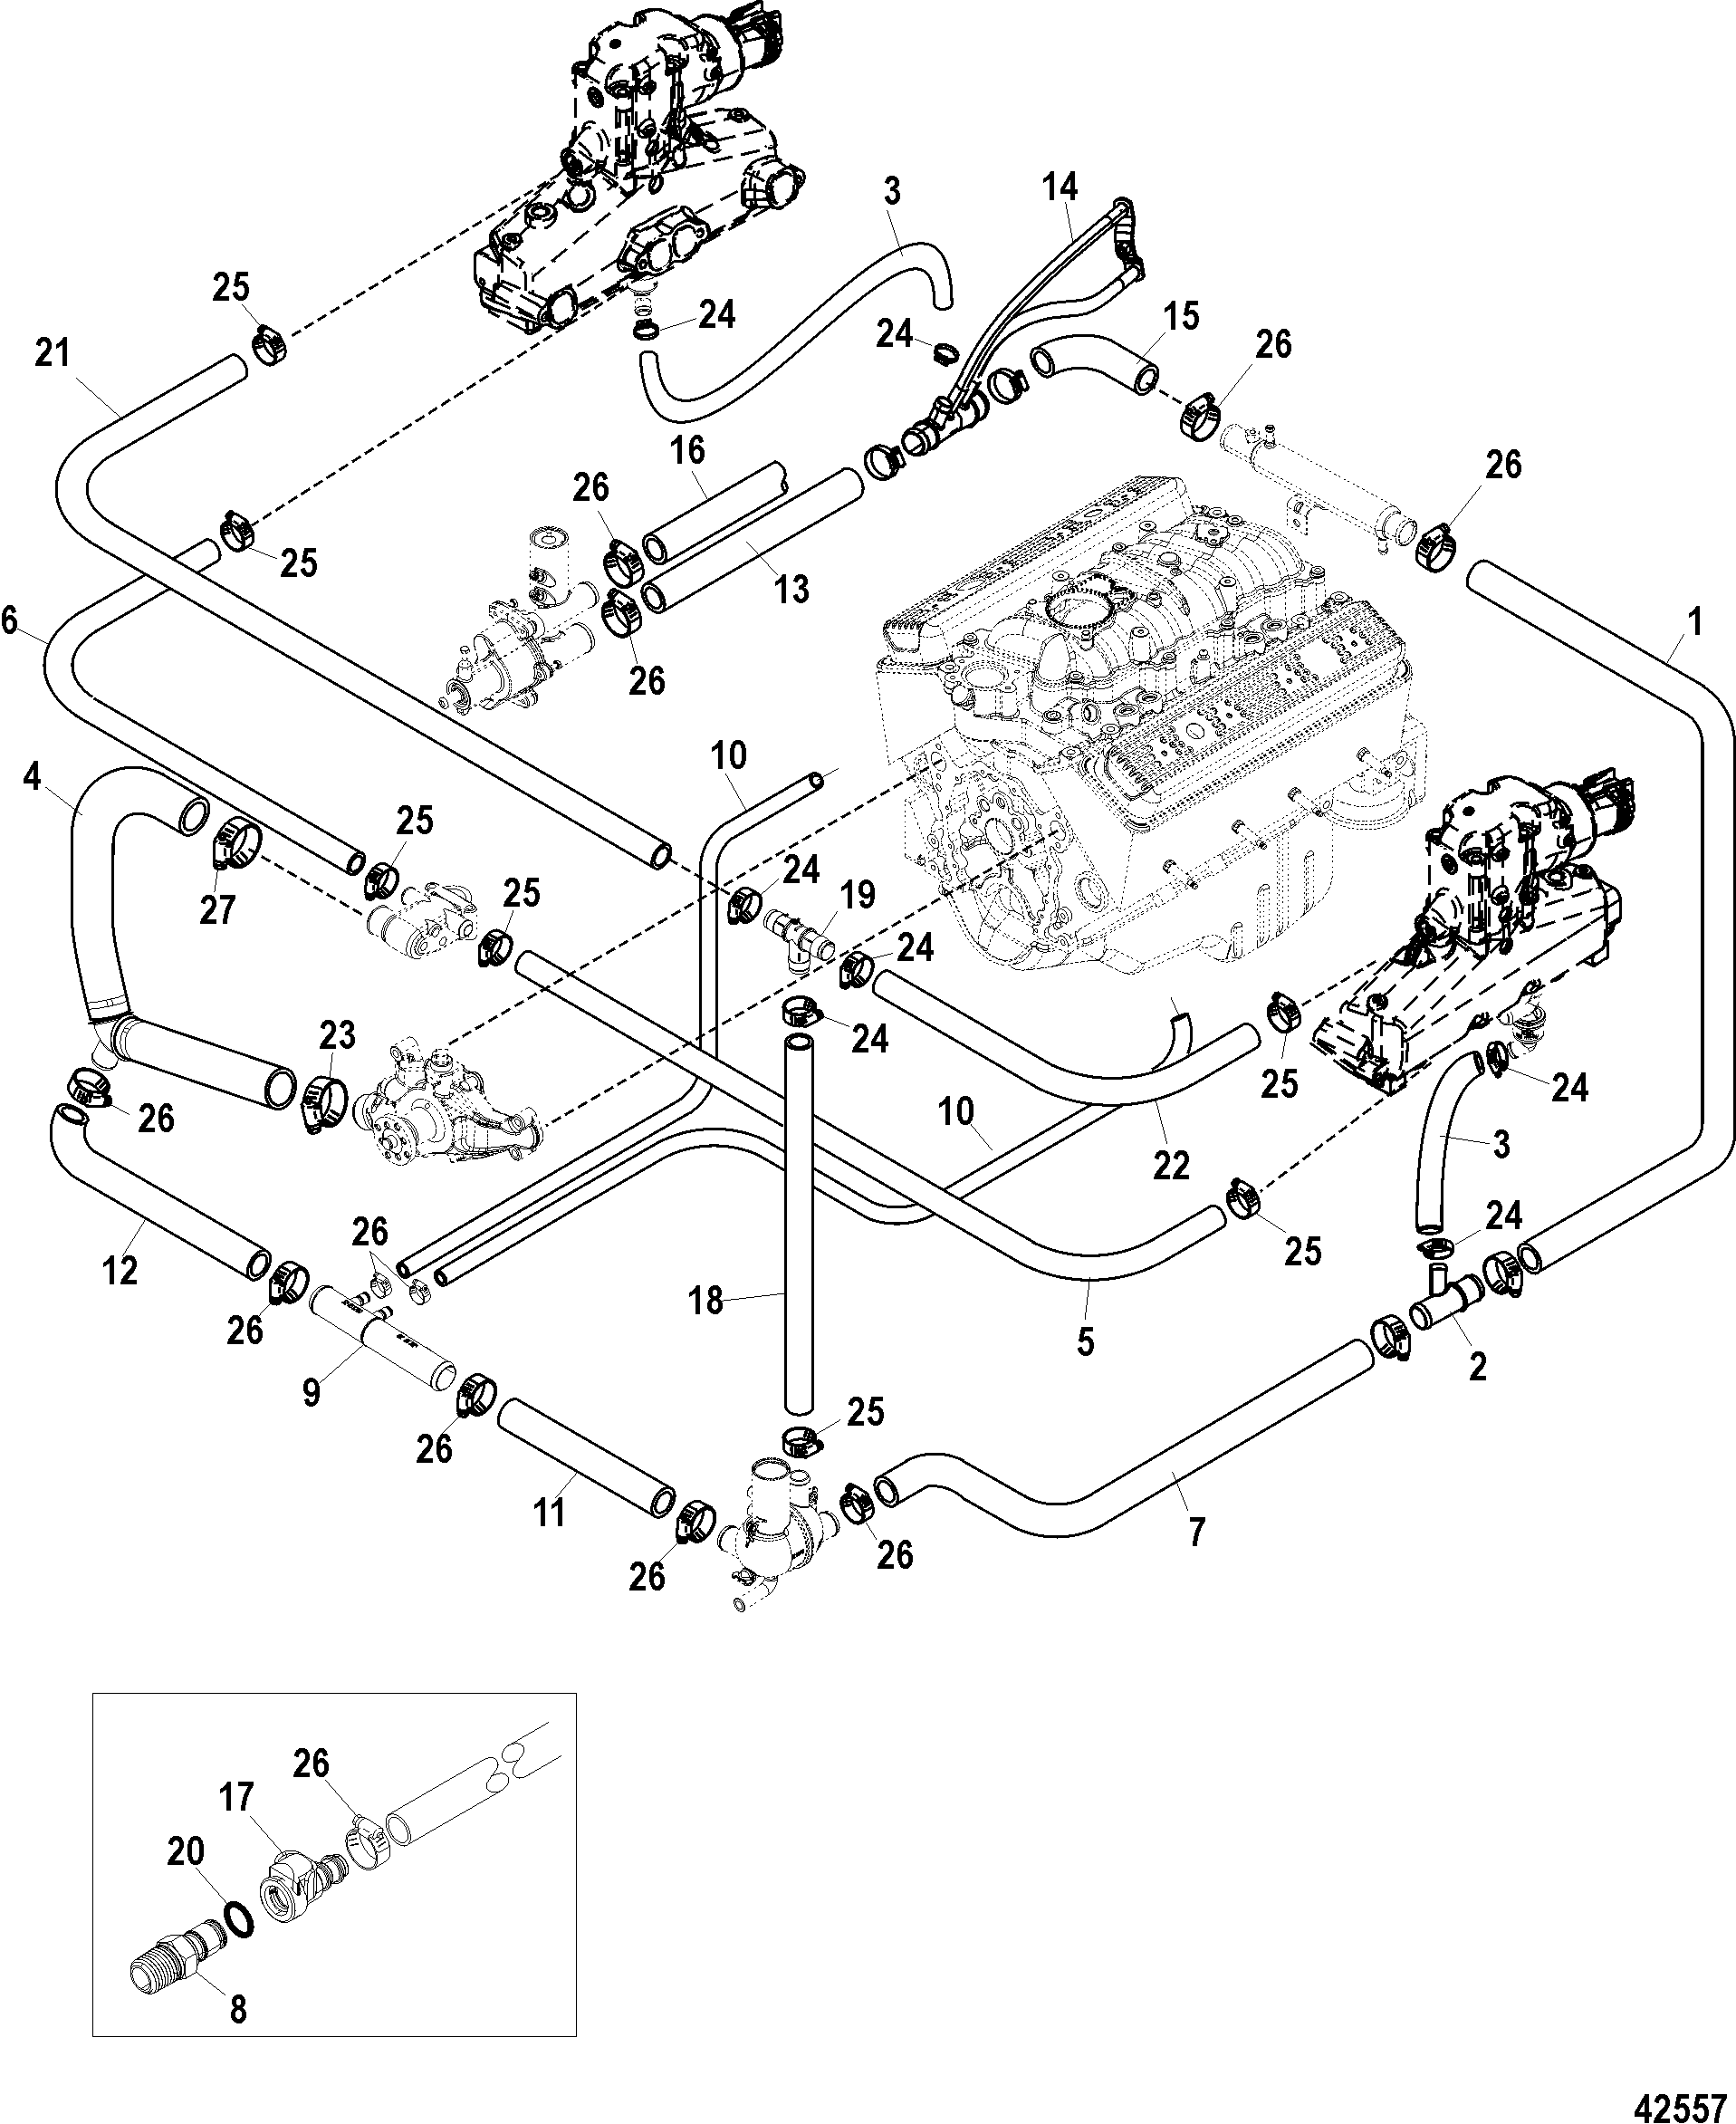 2001 Chevy S10 Radiator Diagram Trusted Wiring 2000 Heater Tahoe Fuel System 1998